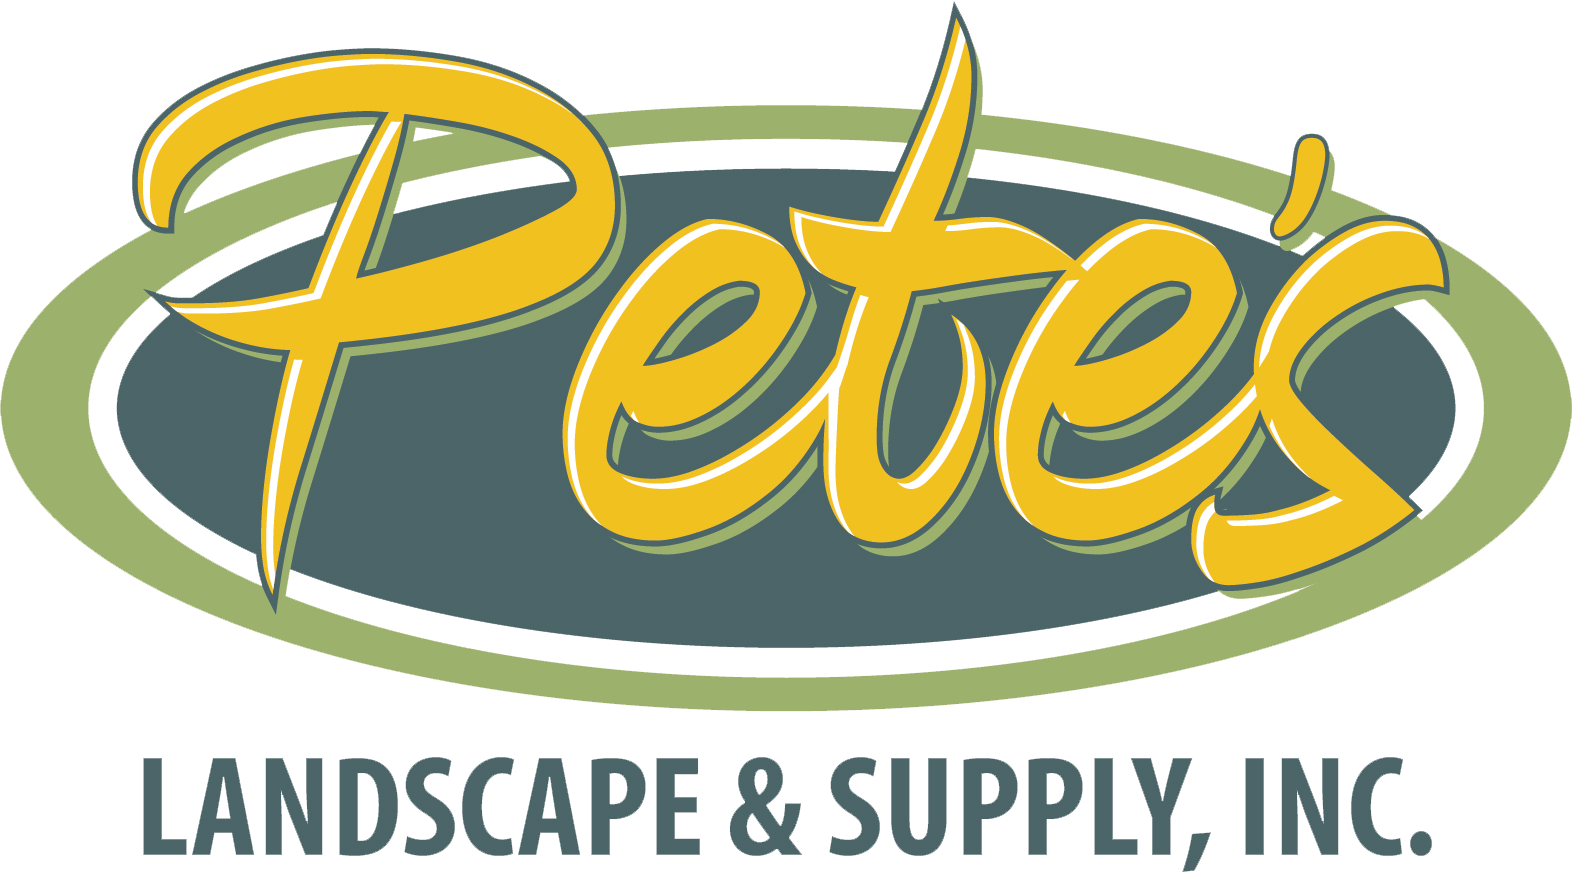 Petes Landscape Supply ... - Pete's Landscape Supply - Landscaping Materials - Central Bangor, ME